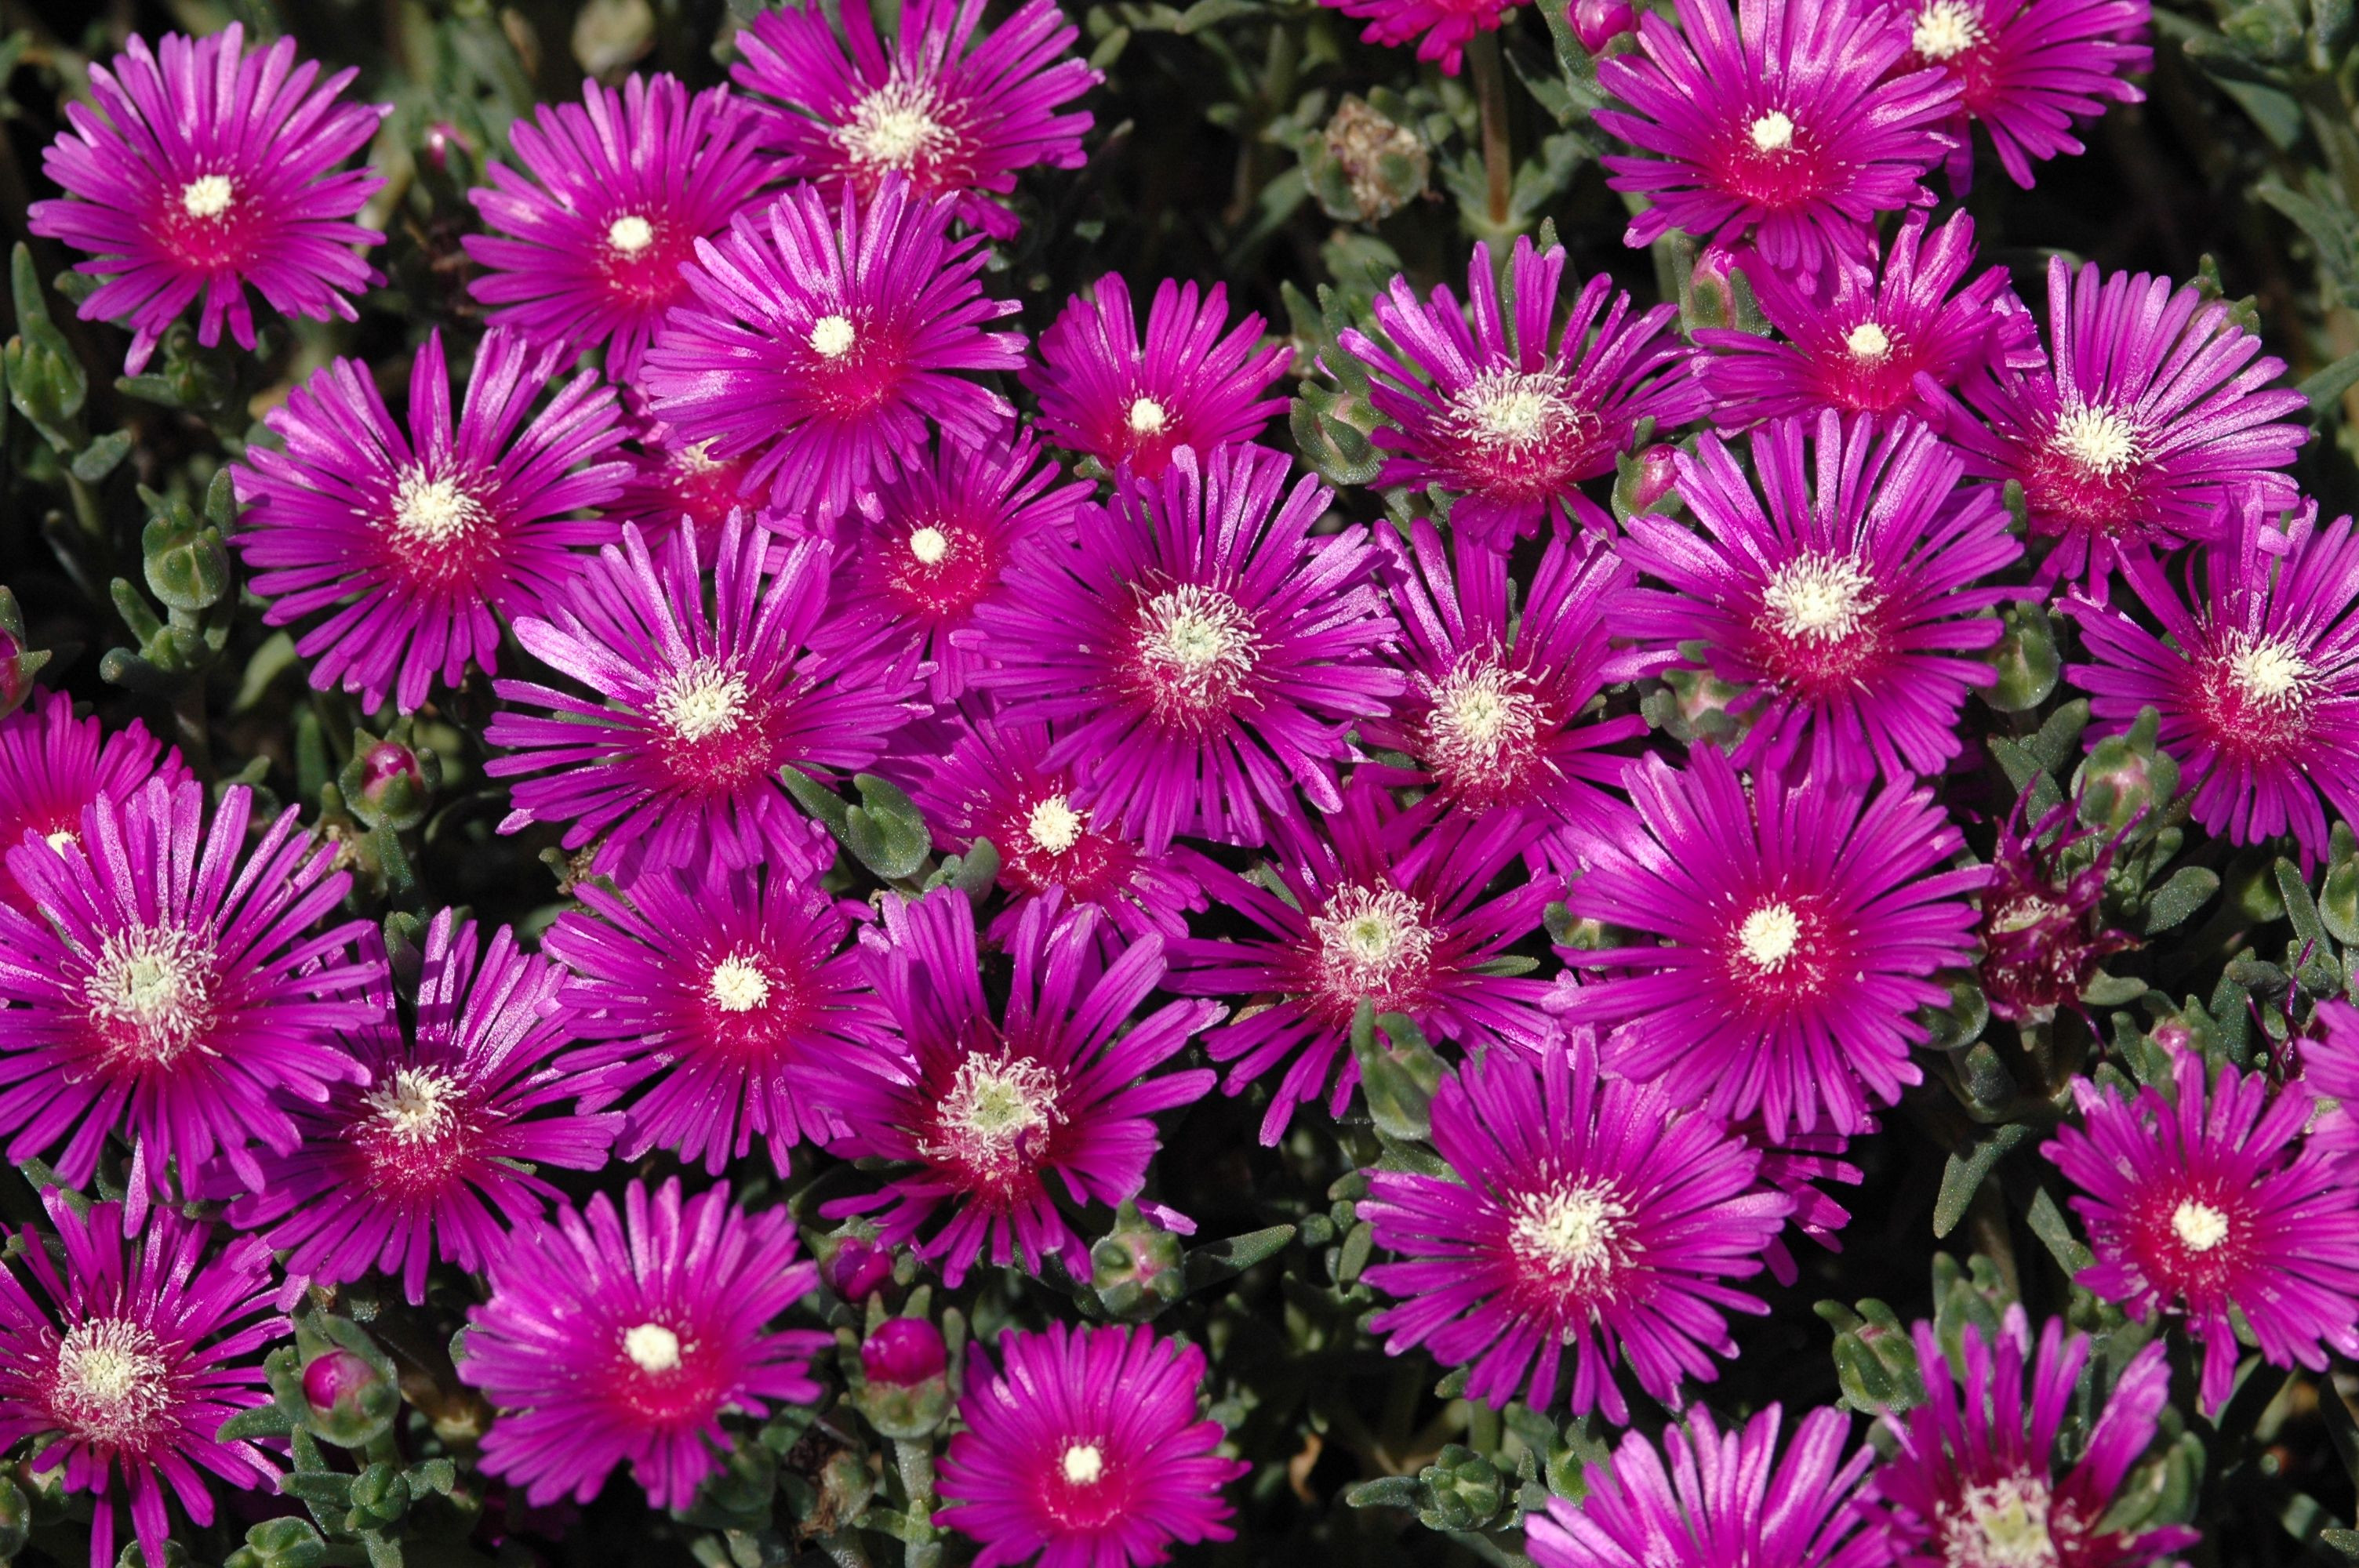 Hardy ice plant is a super cool succulent groundcover that holds up like a champ to hot dry conditions It blooms profusely and attracts butterflies